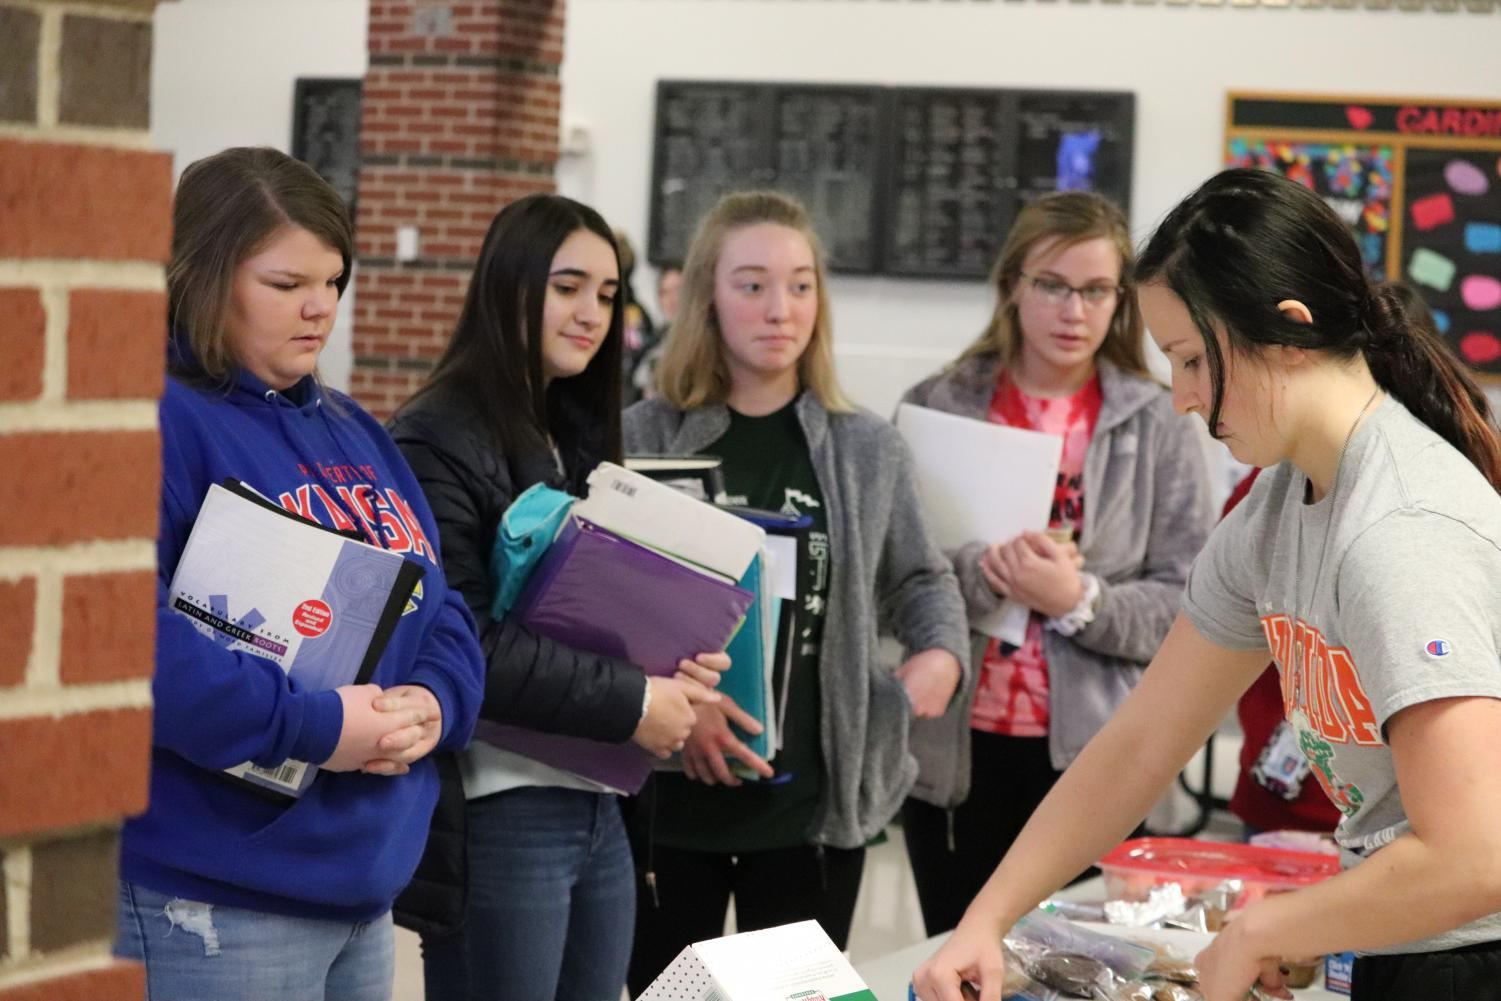 Senior Karley Mooneyham hands out treats to juniors Addie Barkley and Molly Bender, and sophomores Rosalyn Zoglmann and Abby Botkin.  All proceeds went to helping the animals and people in need.